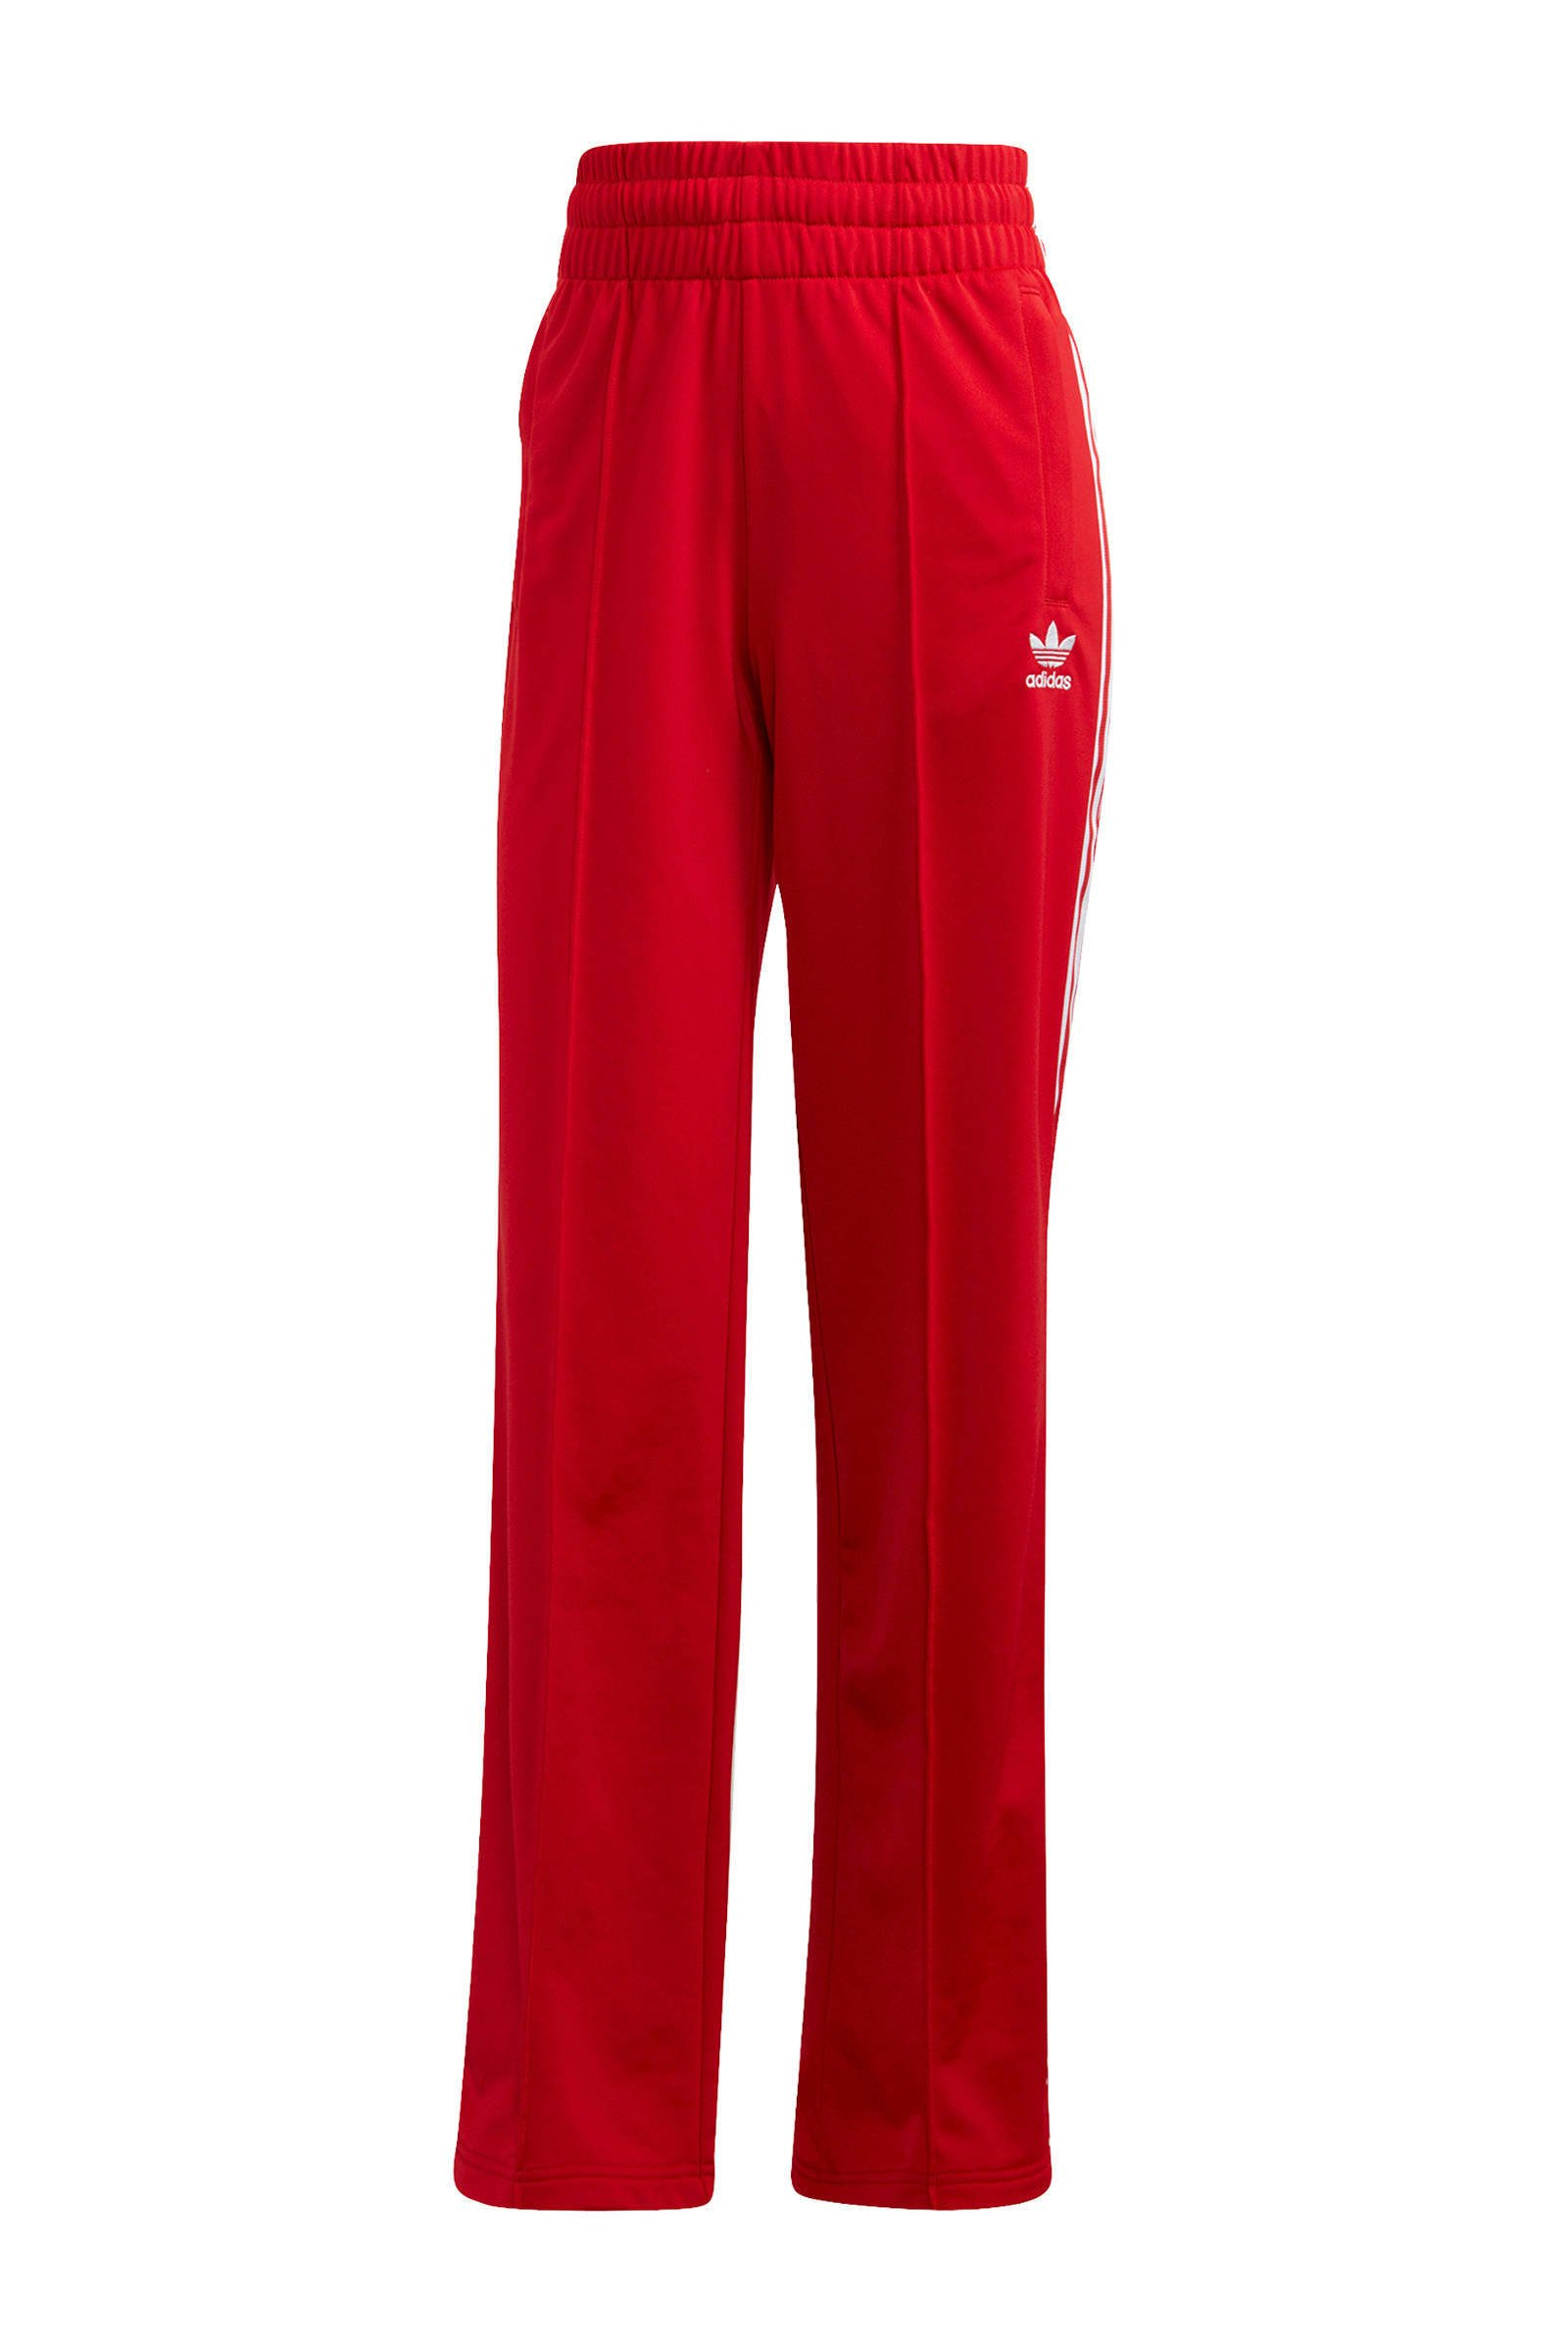 Valentine's Day trainingsbroek rood/wit